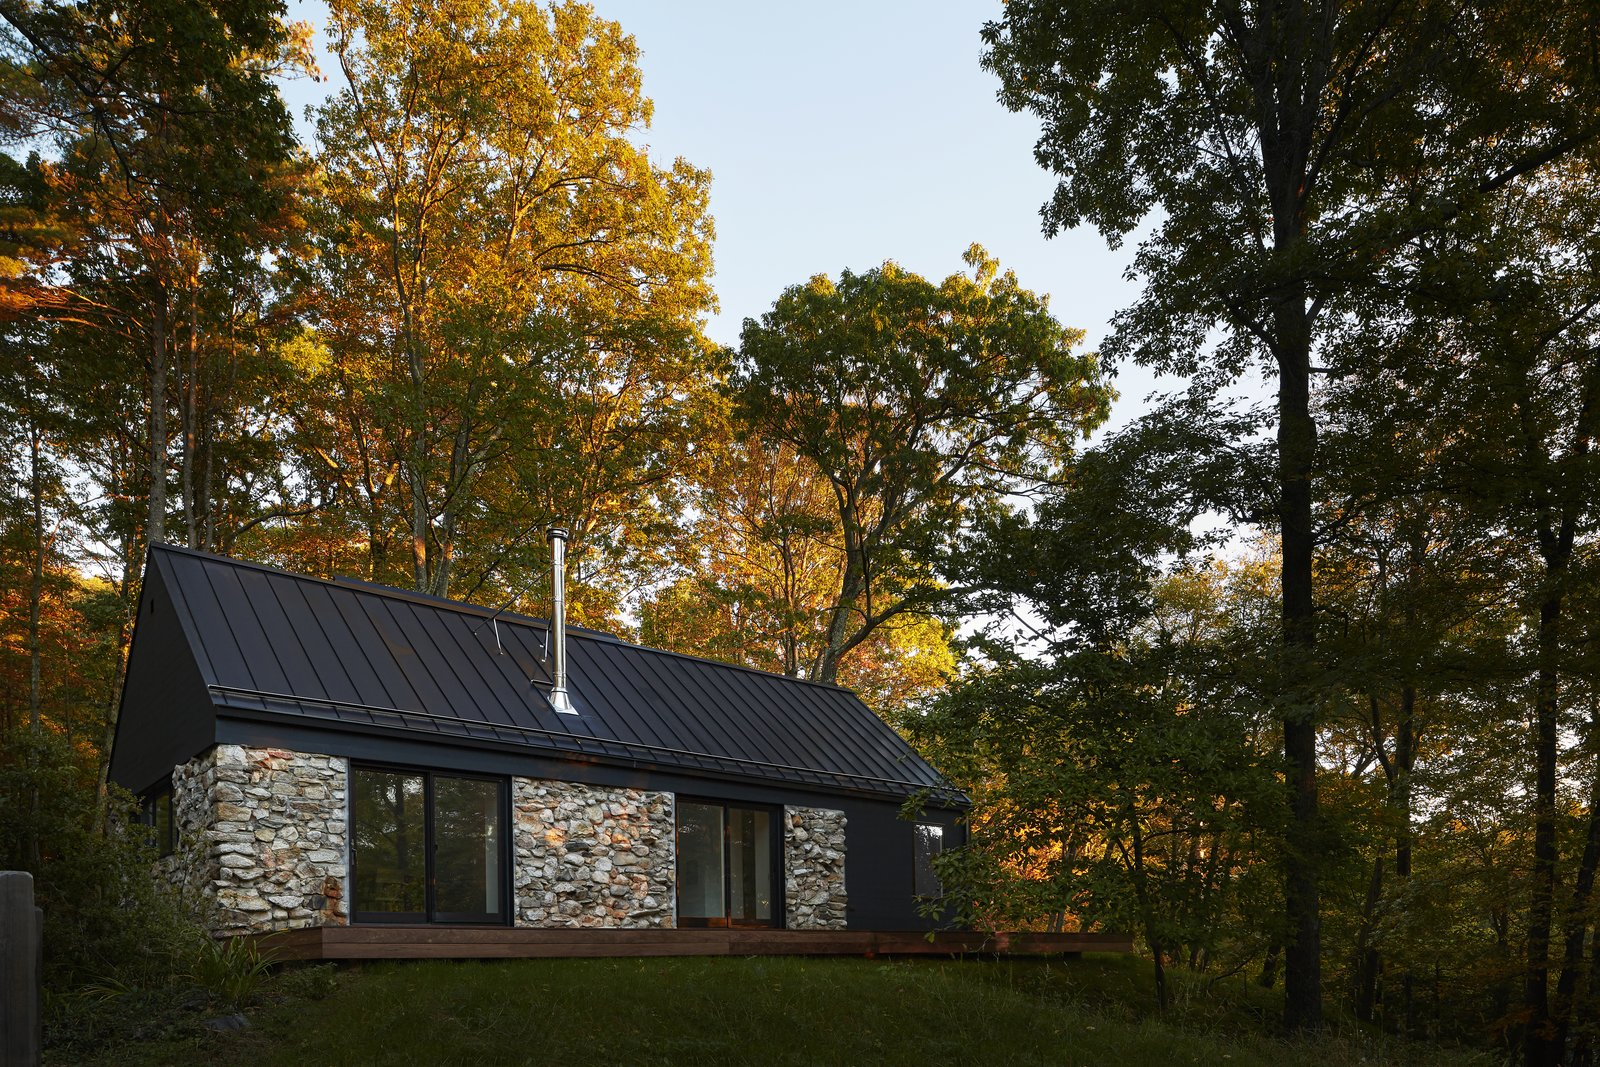 Exterior, House Building Type, Stone Siding Material, Cabin Building Type, Metal Roof Material, Gable RoofLine, and Wood Siding Material  Photo 1 of 13 in A Minimalist Retreat Rises From Old Stone Walls in Hudson Valley